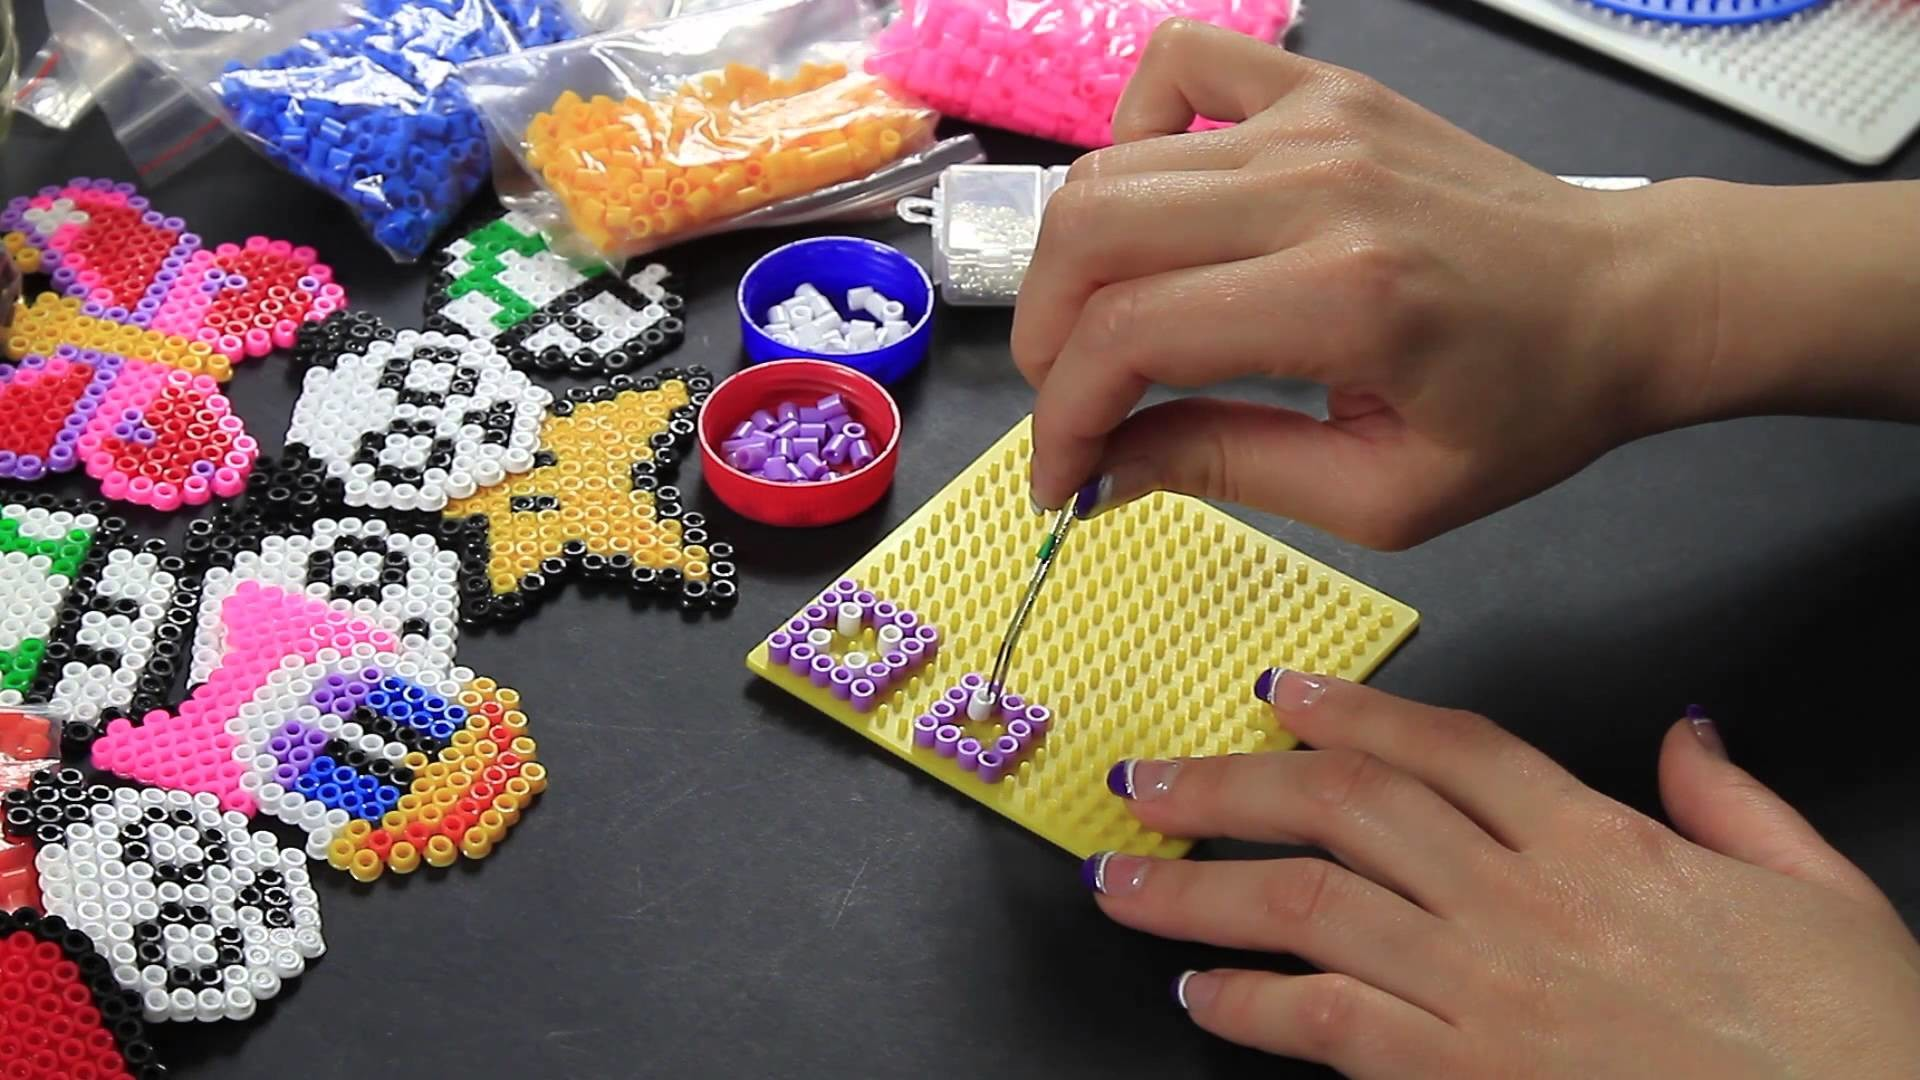 Video Tutorial Hama Beads Orecchino Pyssla fucsia, bianco FULL HD ITA